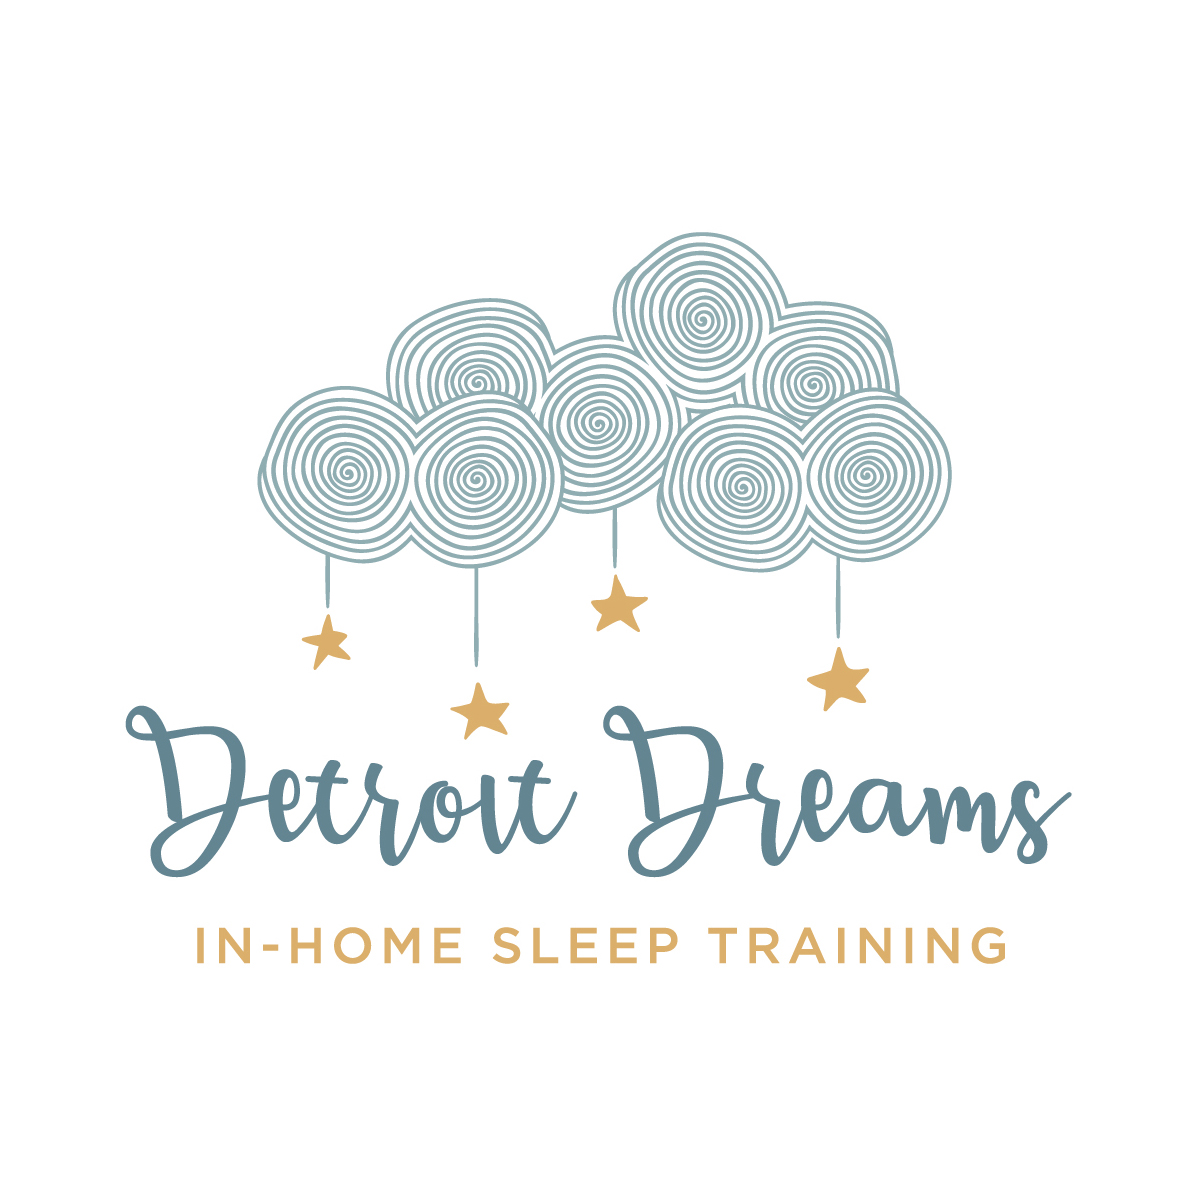 Detroit Dreams Tonight | Mommywise Sleep Coach